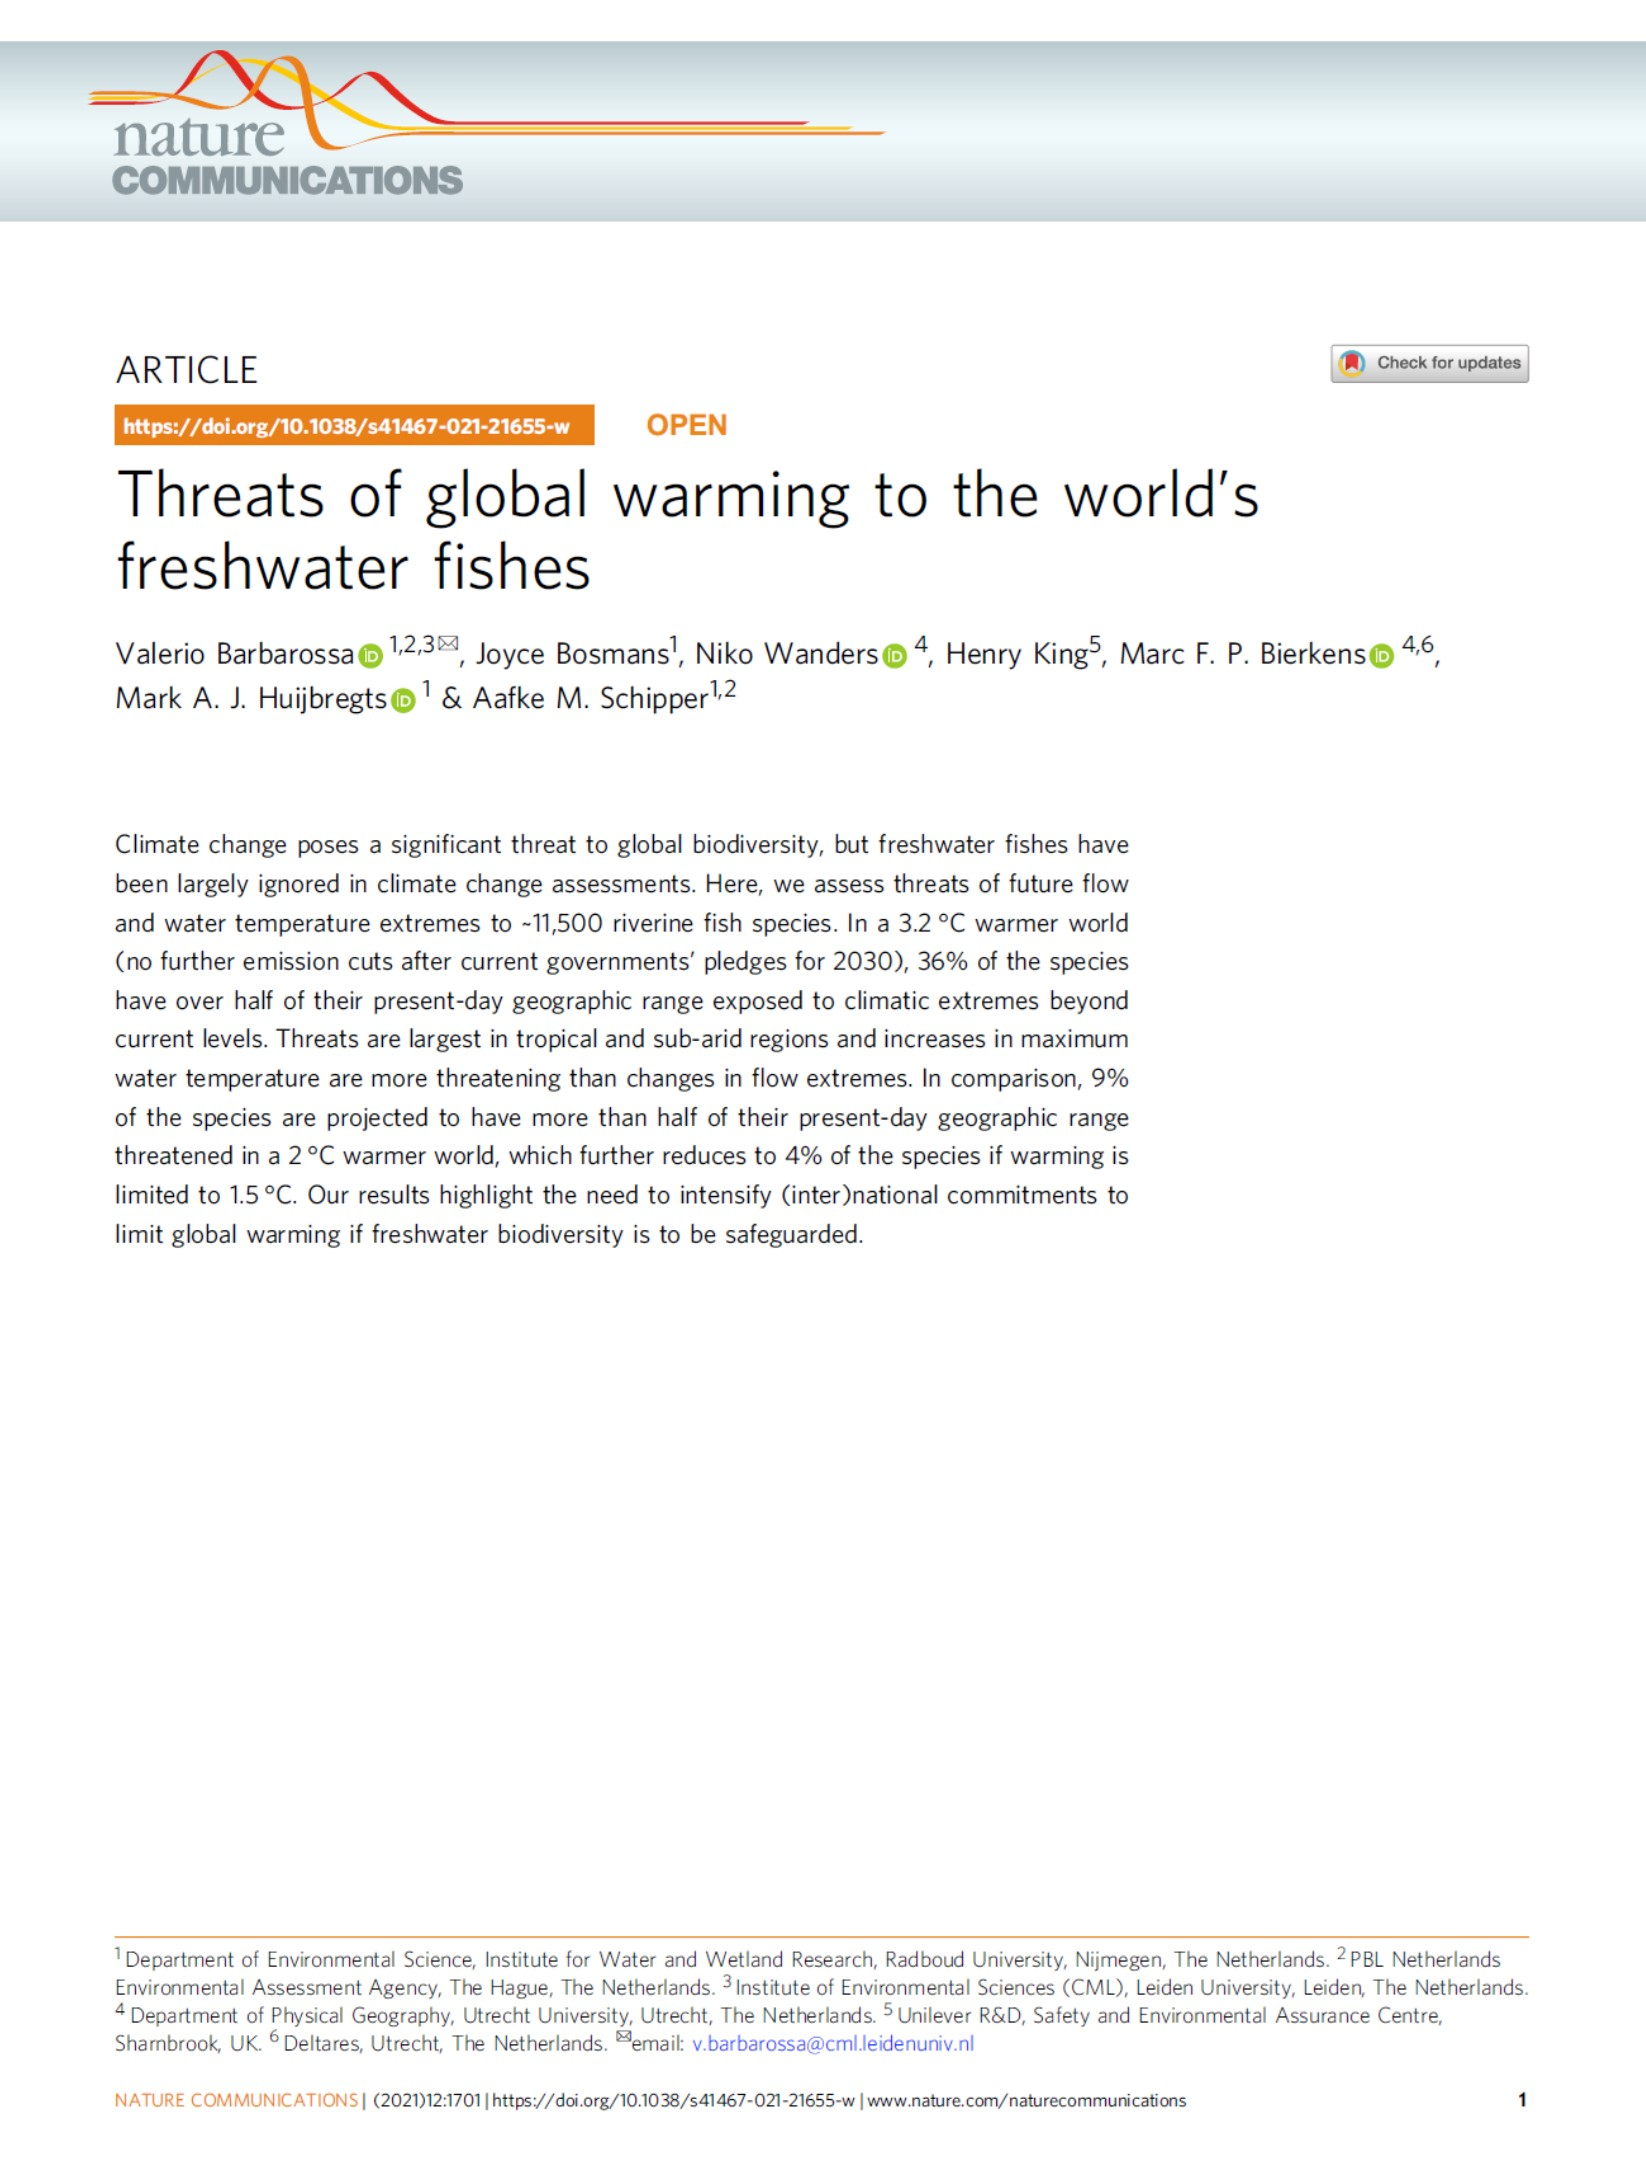 Threats of global warming to the world's freshwater fishes